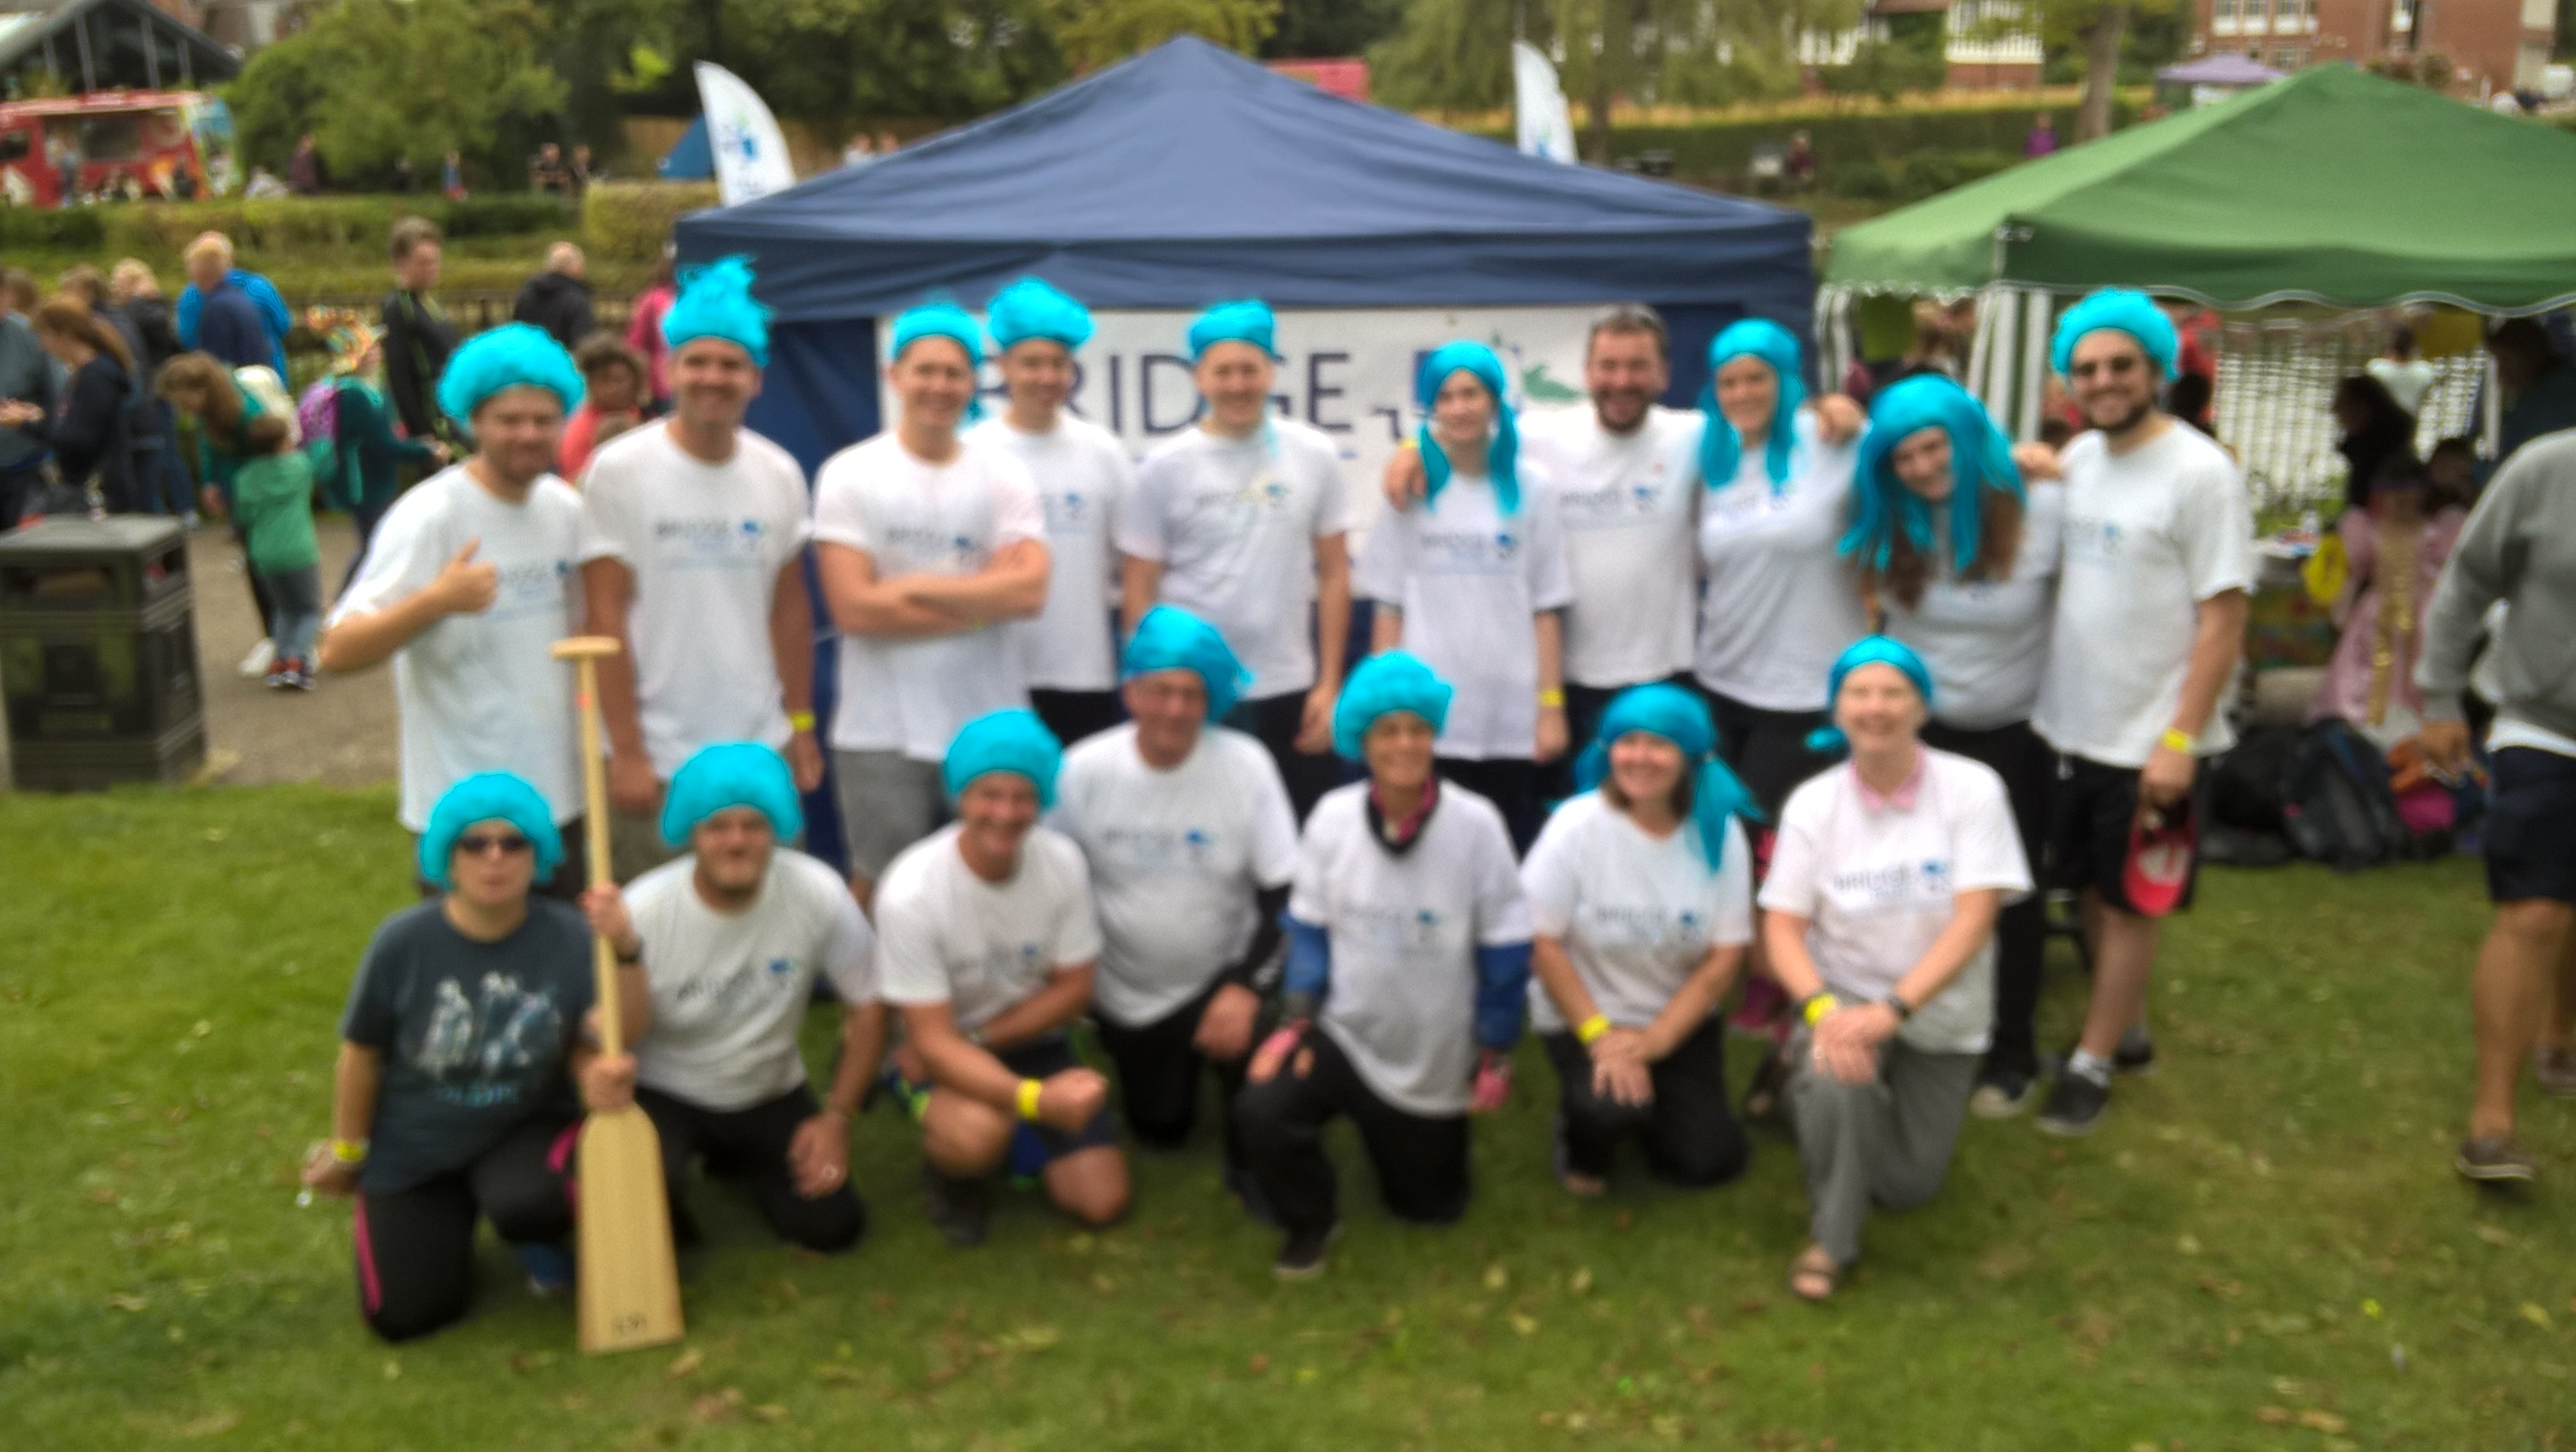 Tonbridge Dragon Boat Race - COMPLETED